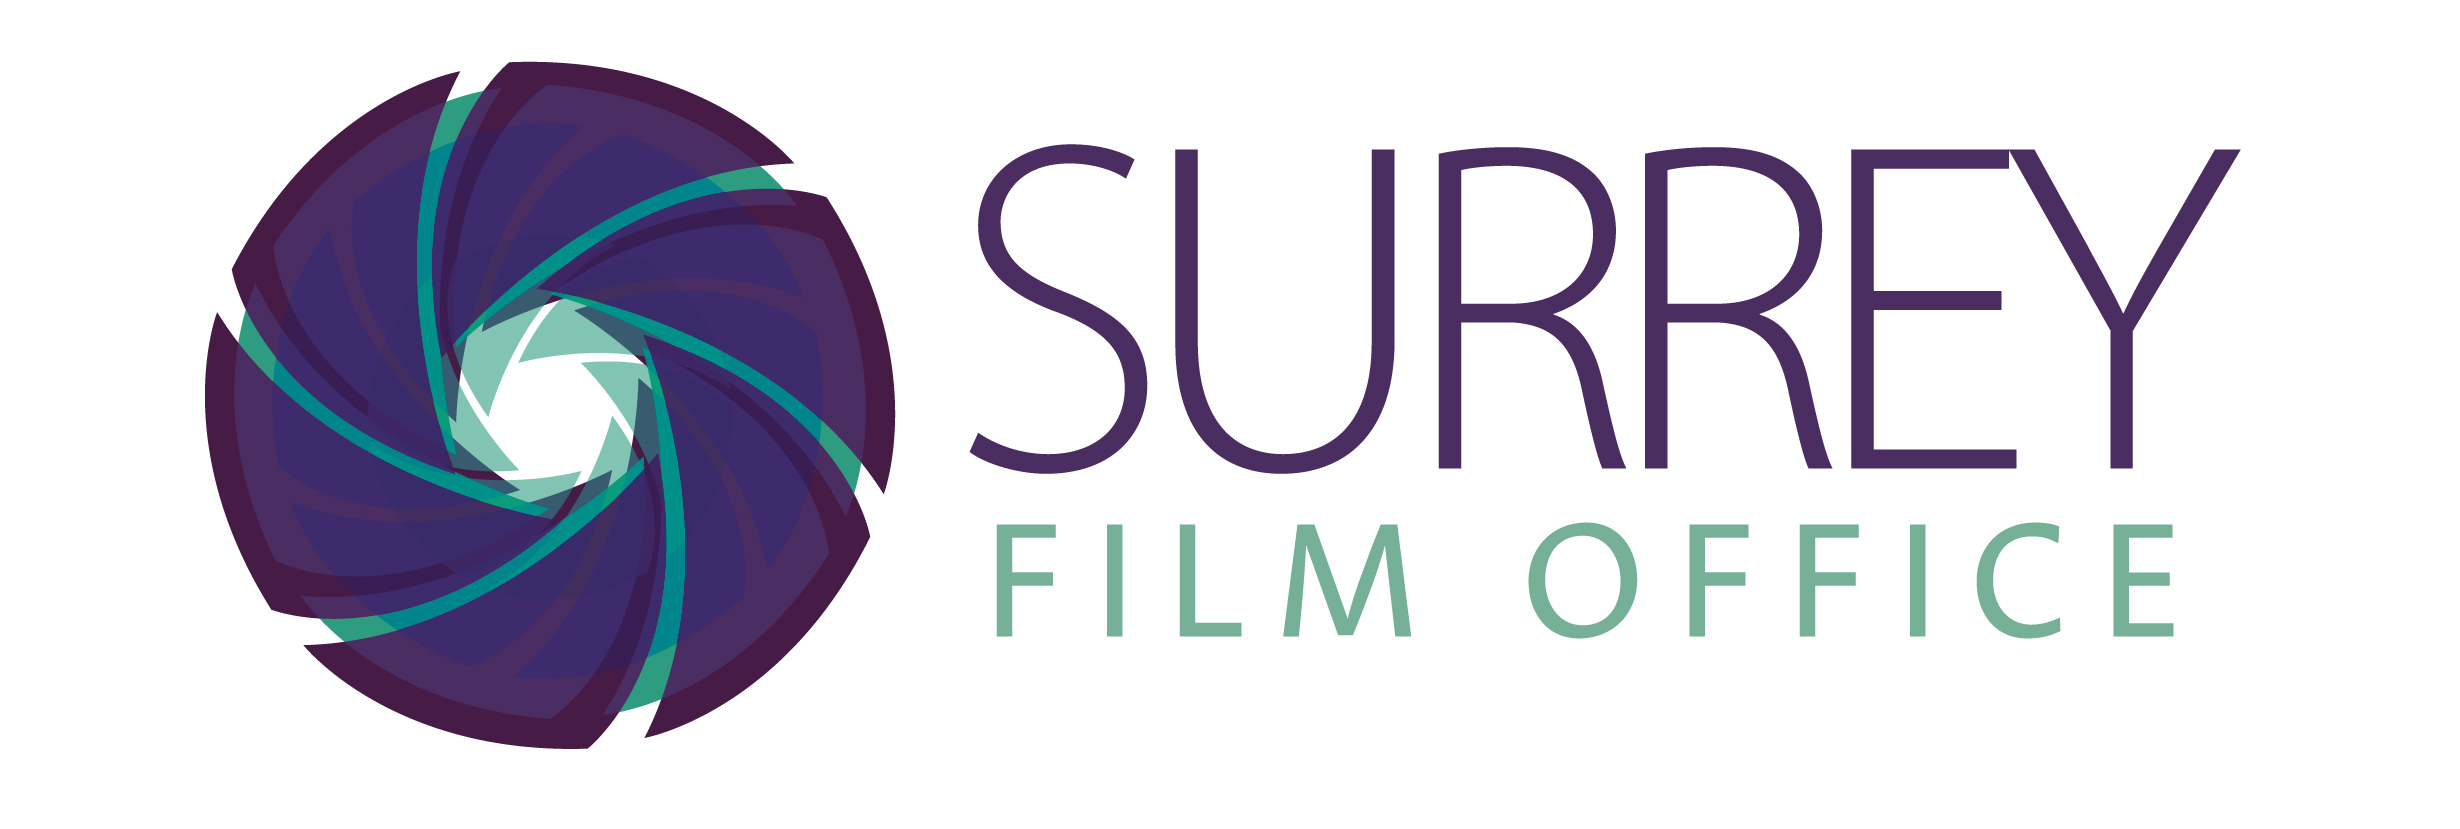 Surrey Film Office Image